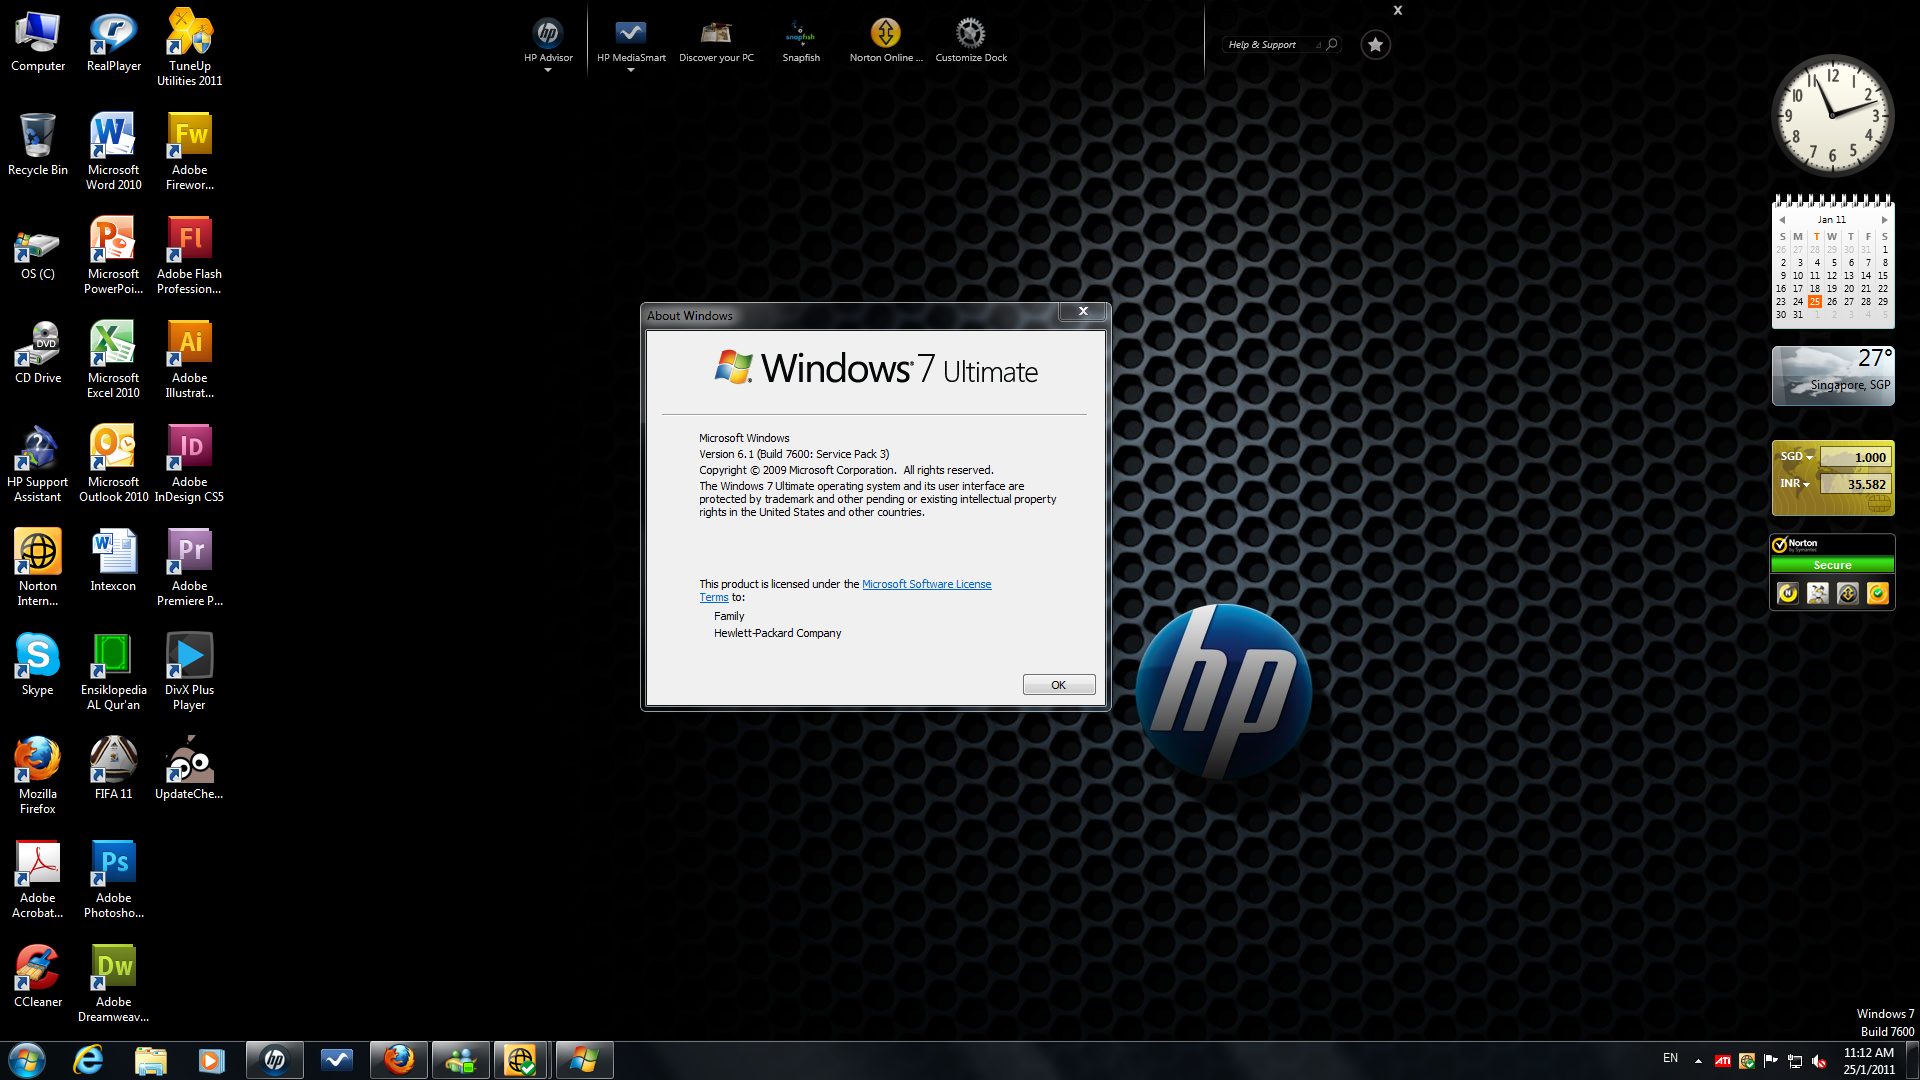 *[NEW DISCOVERY]* My friend's computer has Windows 7 SP3 ...